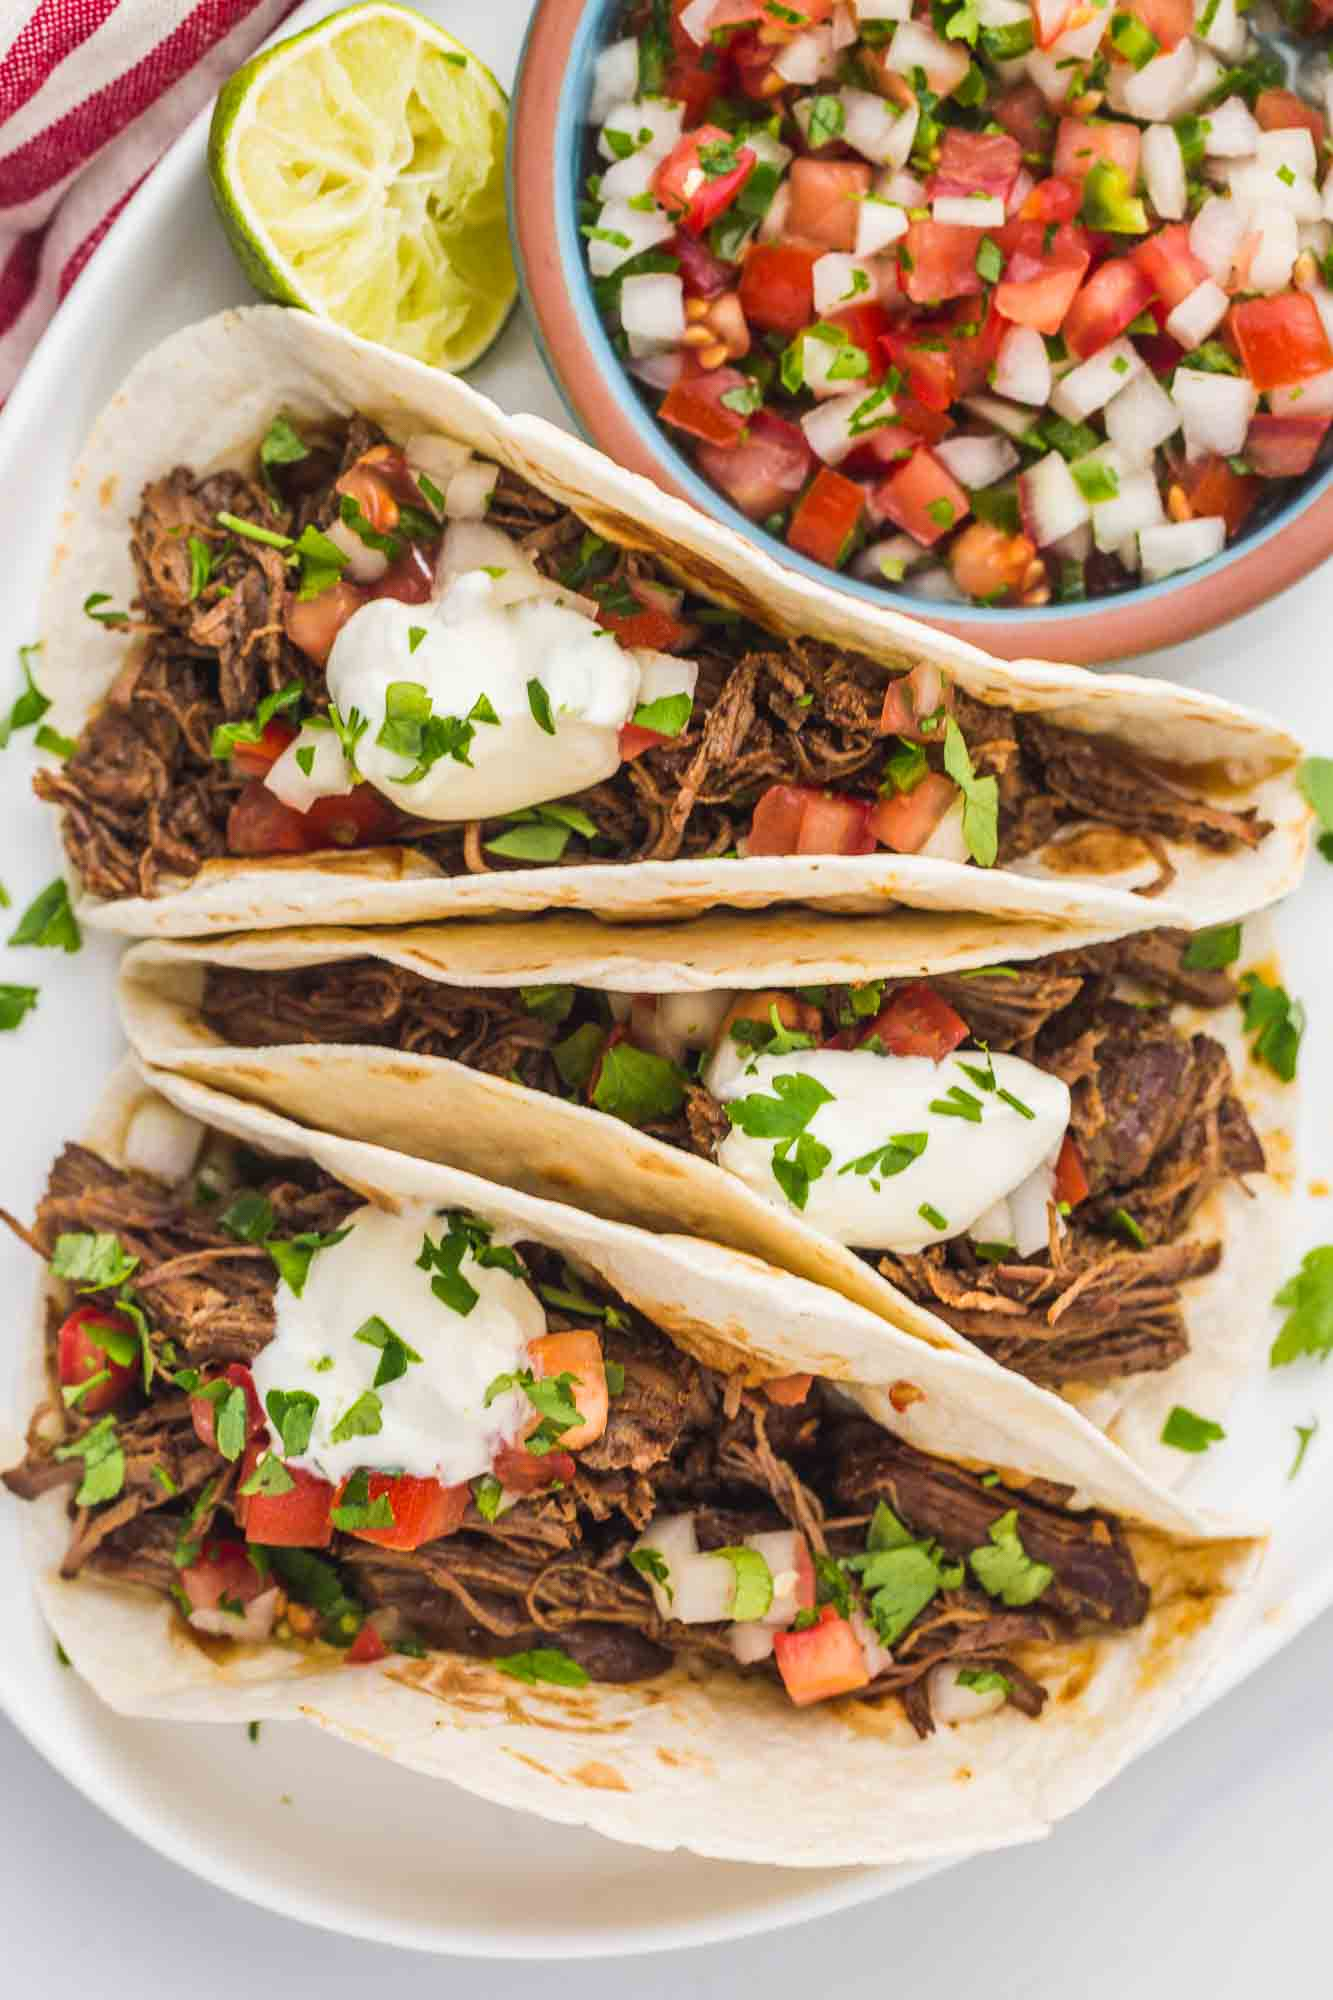 Overhead shot of shredded beef tacos with pico de gallo and lime crema